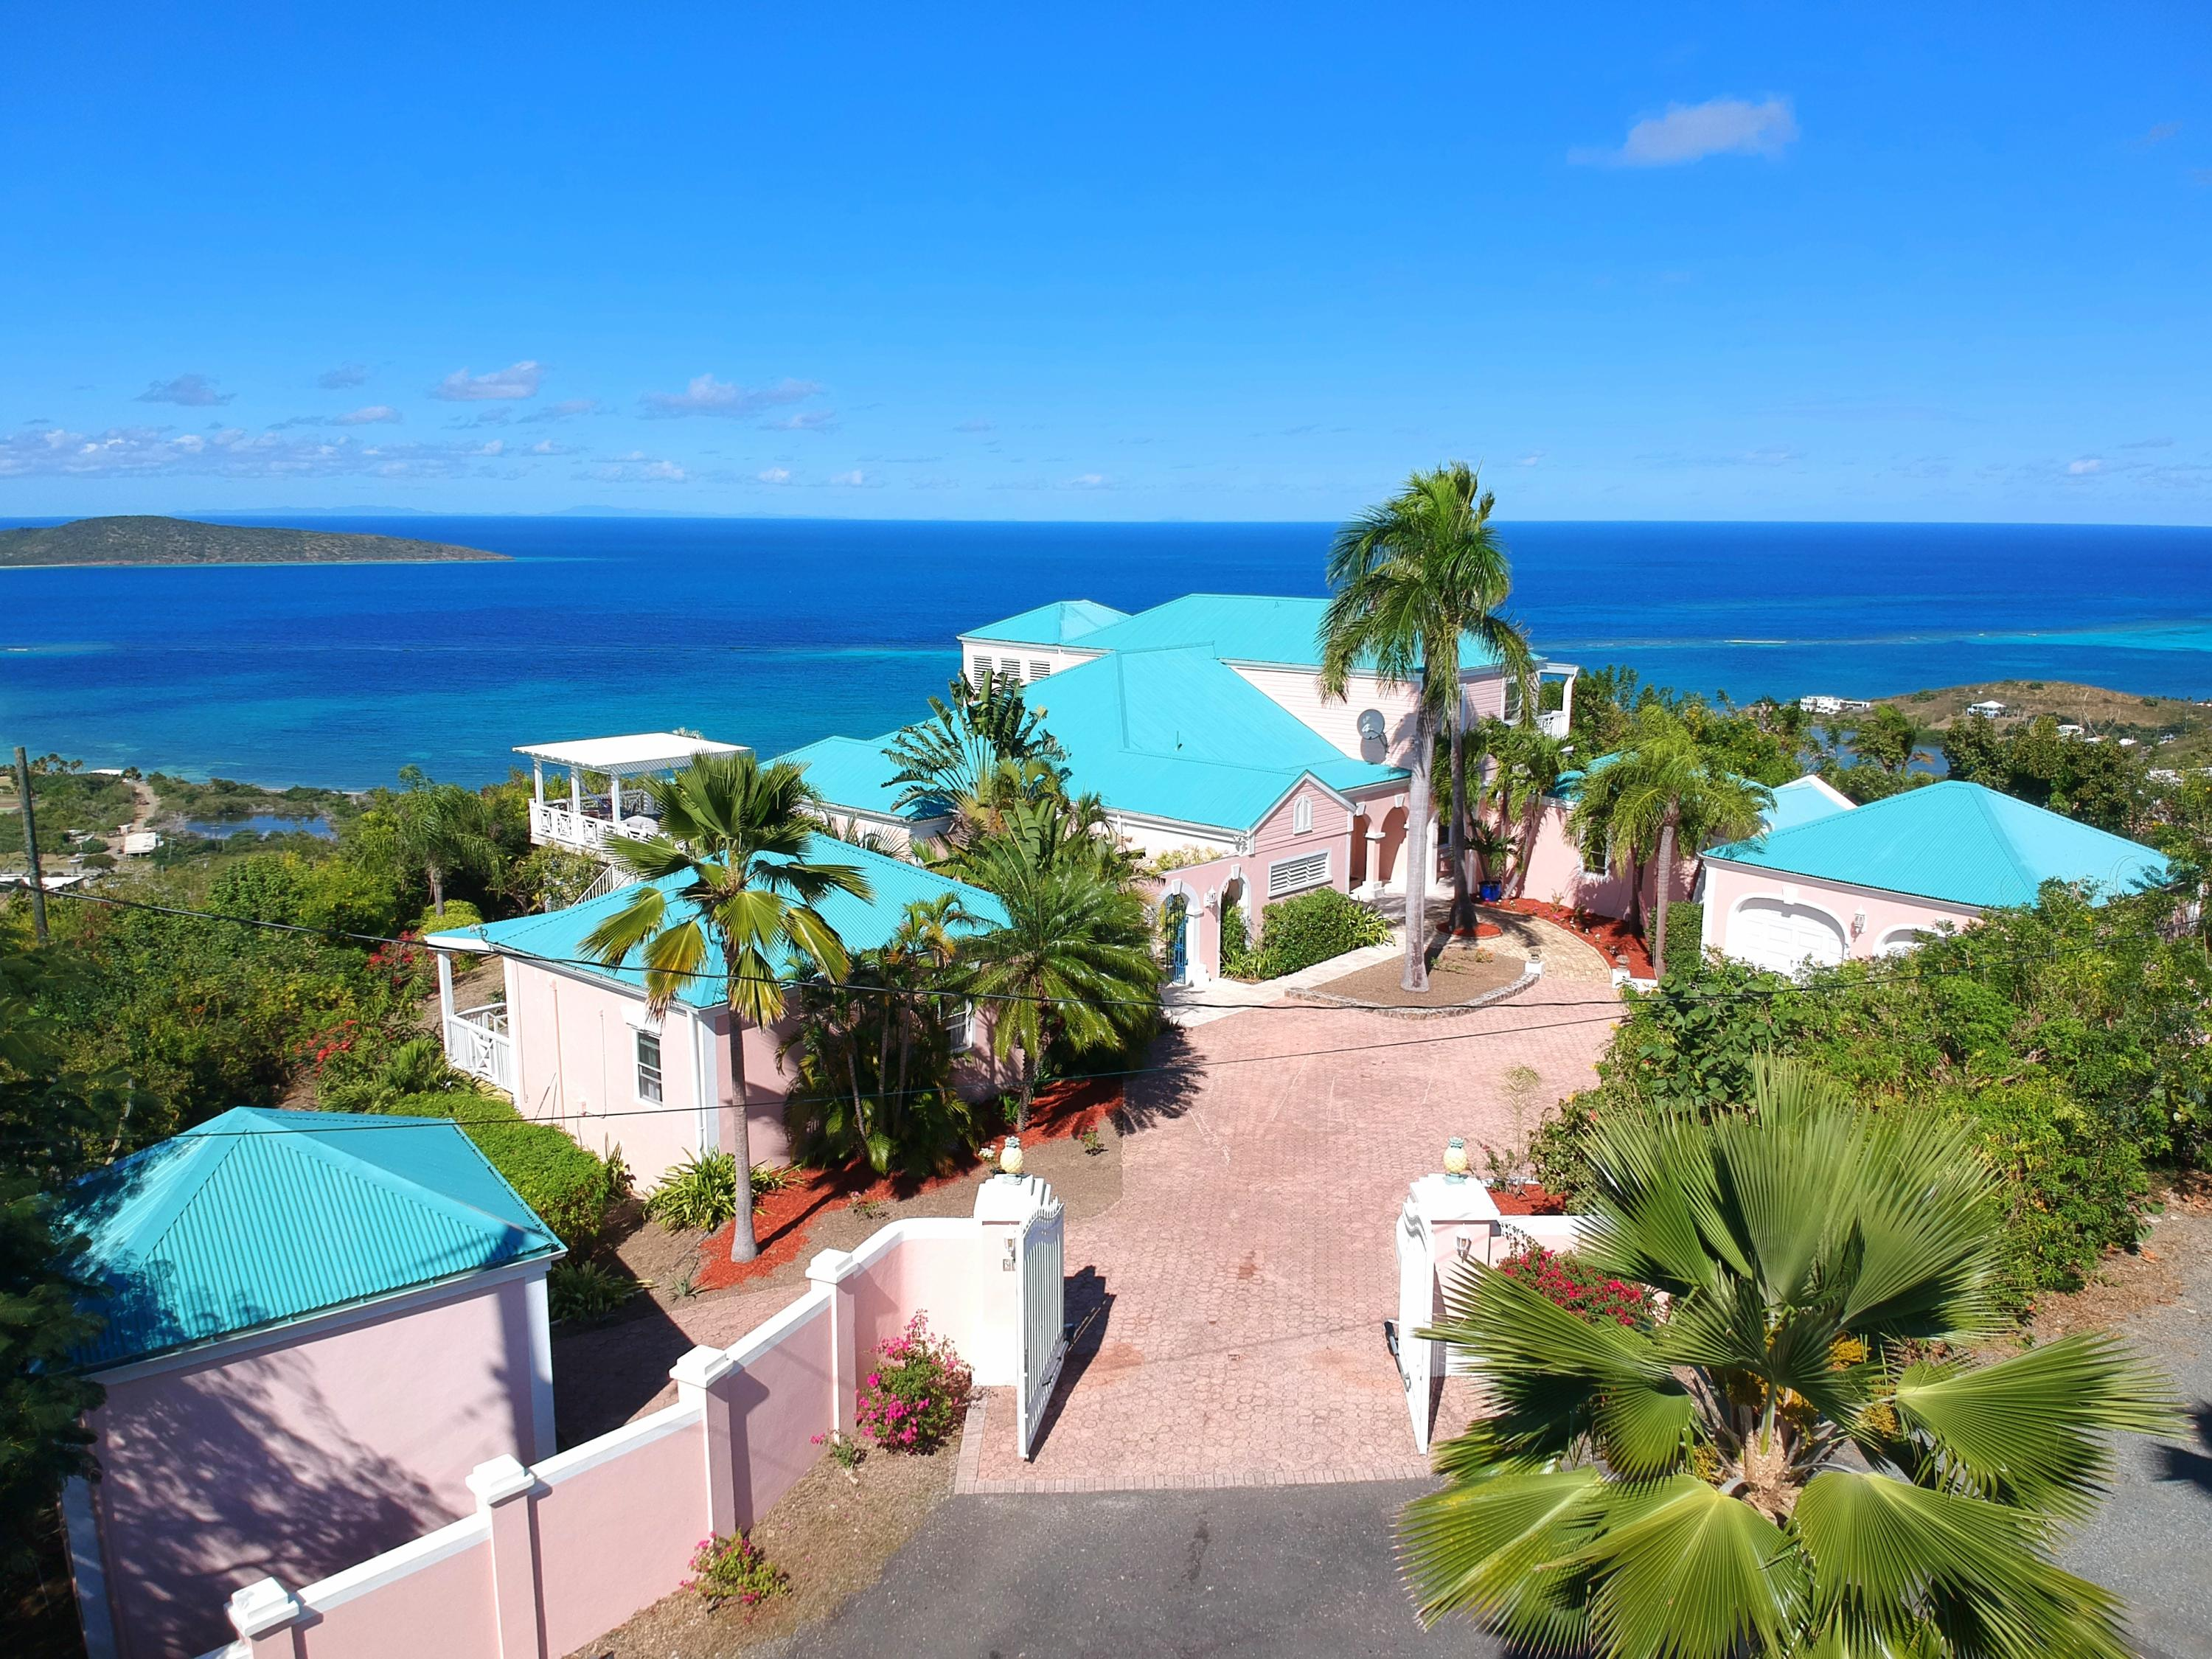 Single Family Home for Sale at 5A Teagues Bay EB 5A Teagues Bay EB St Croix, Virgin Islands 00820 United States Virgin Islands